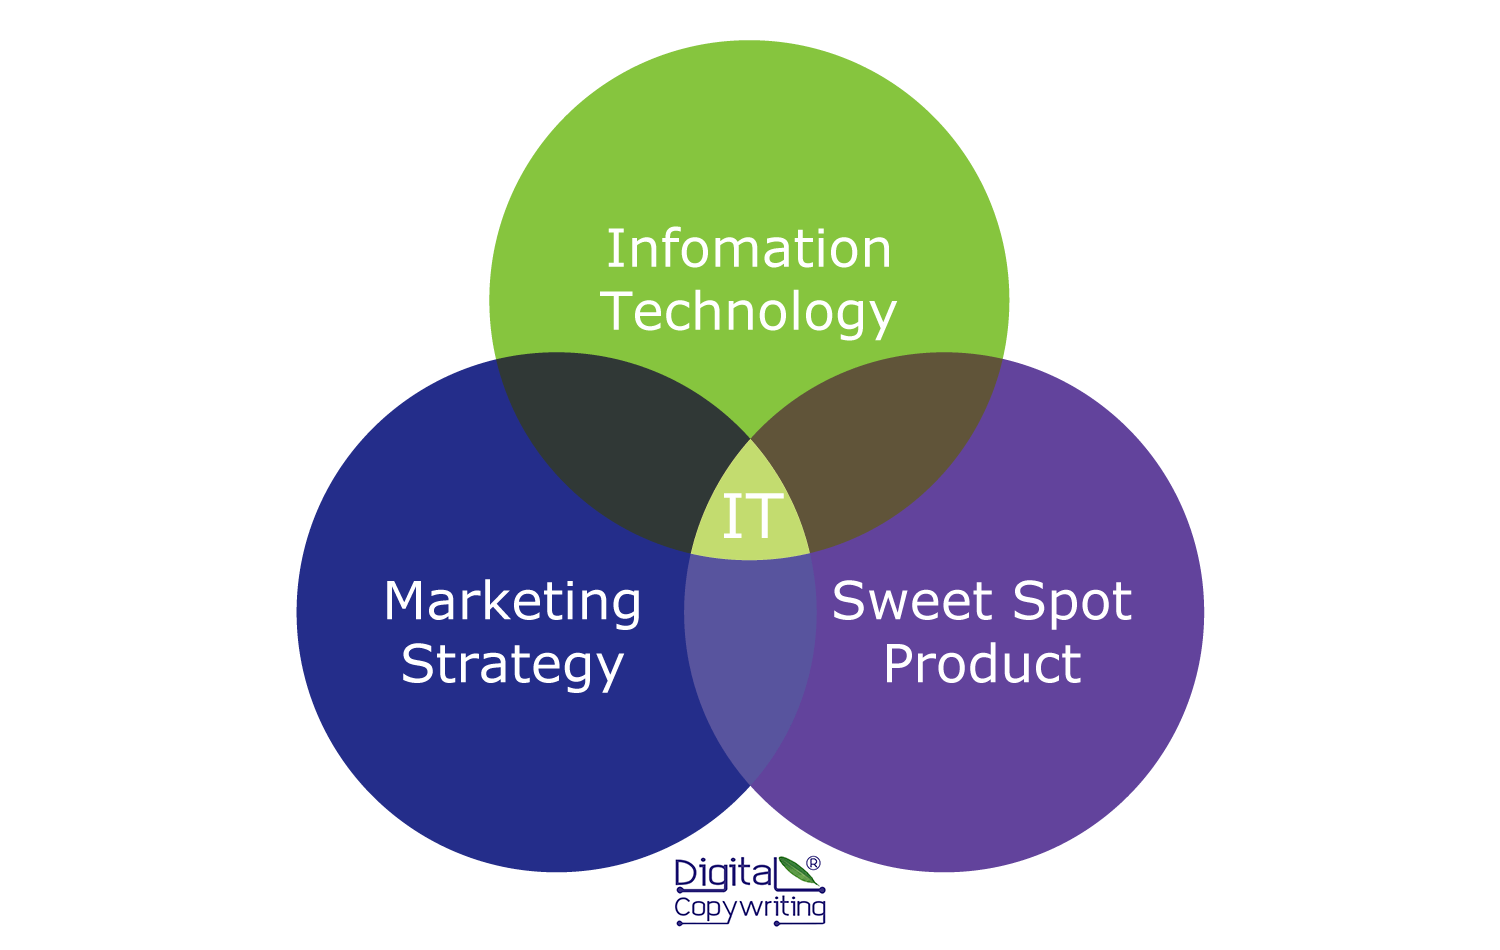 where information technology, marketing strategy and sweet spot product intersect